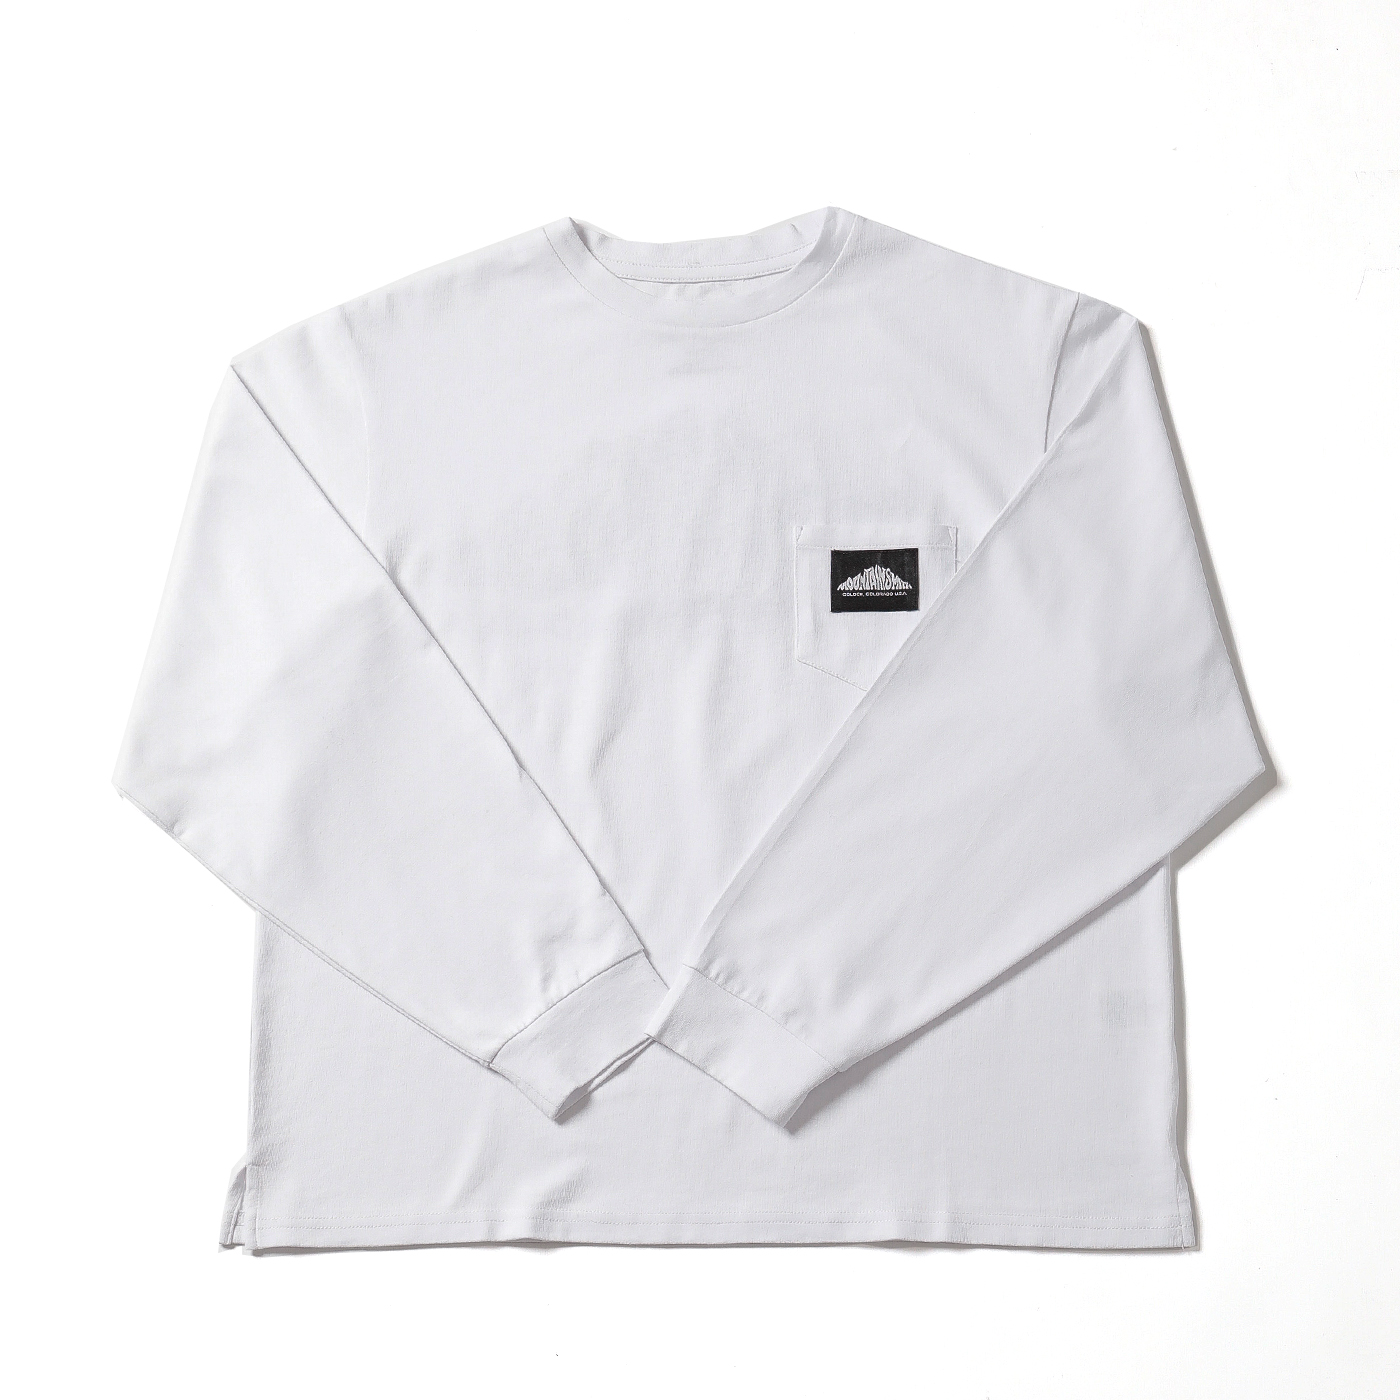 product: MS EMBRO LS / color: WHITE 1